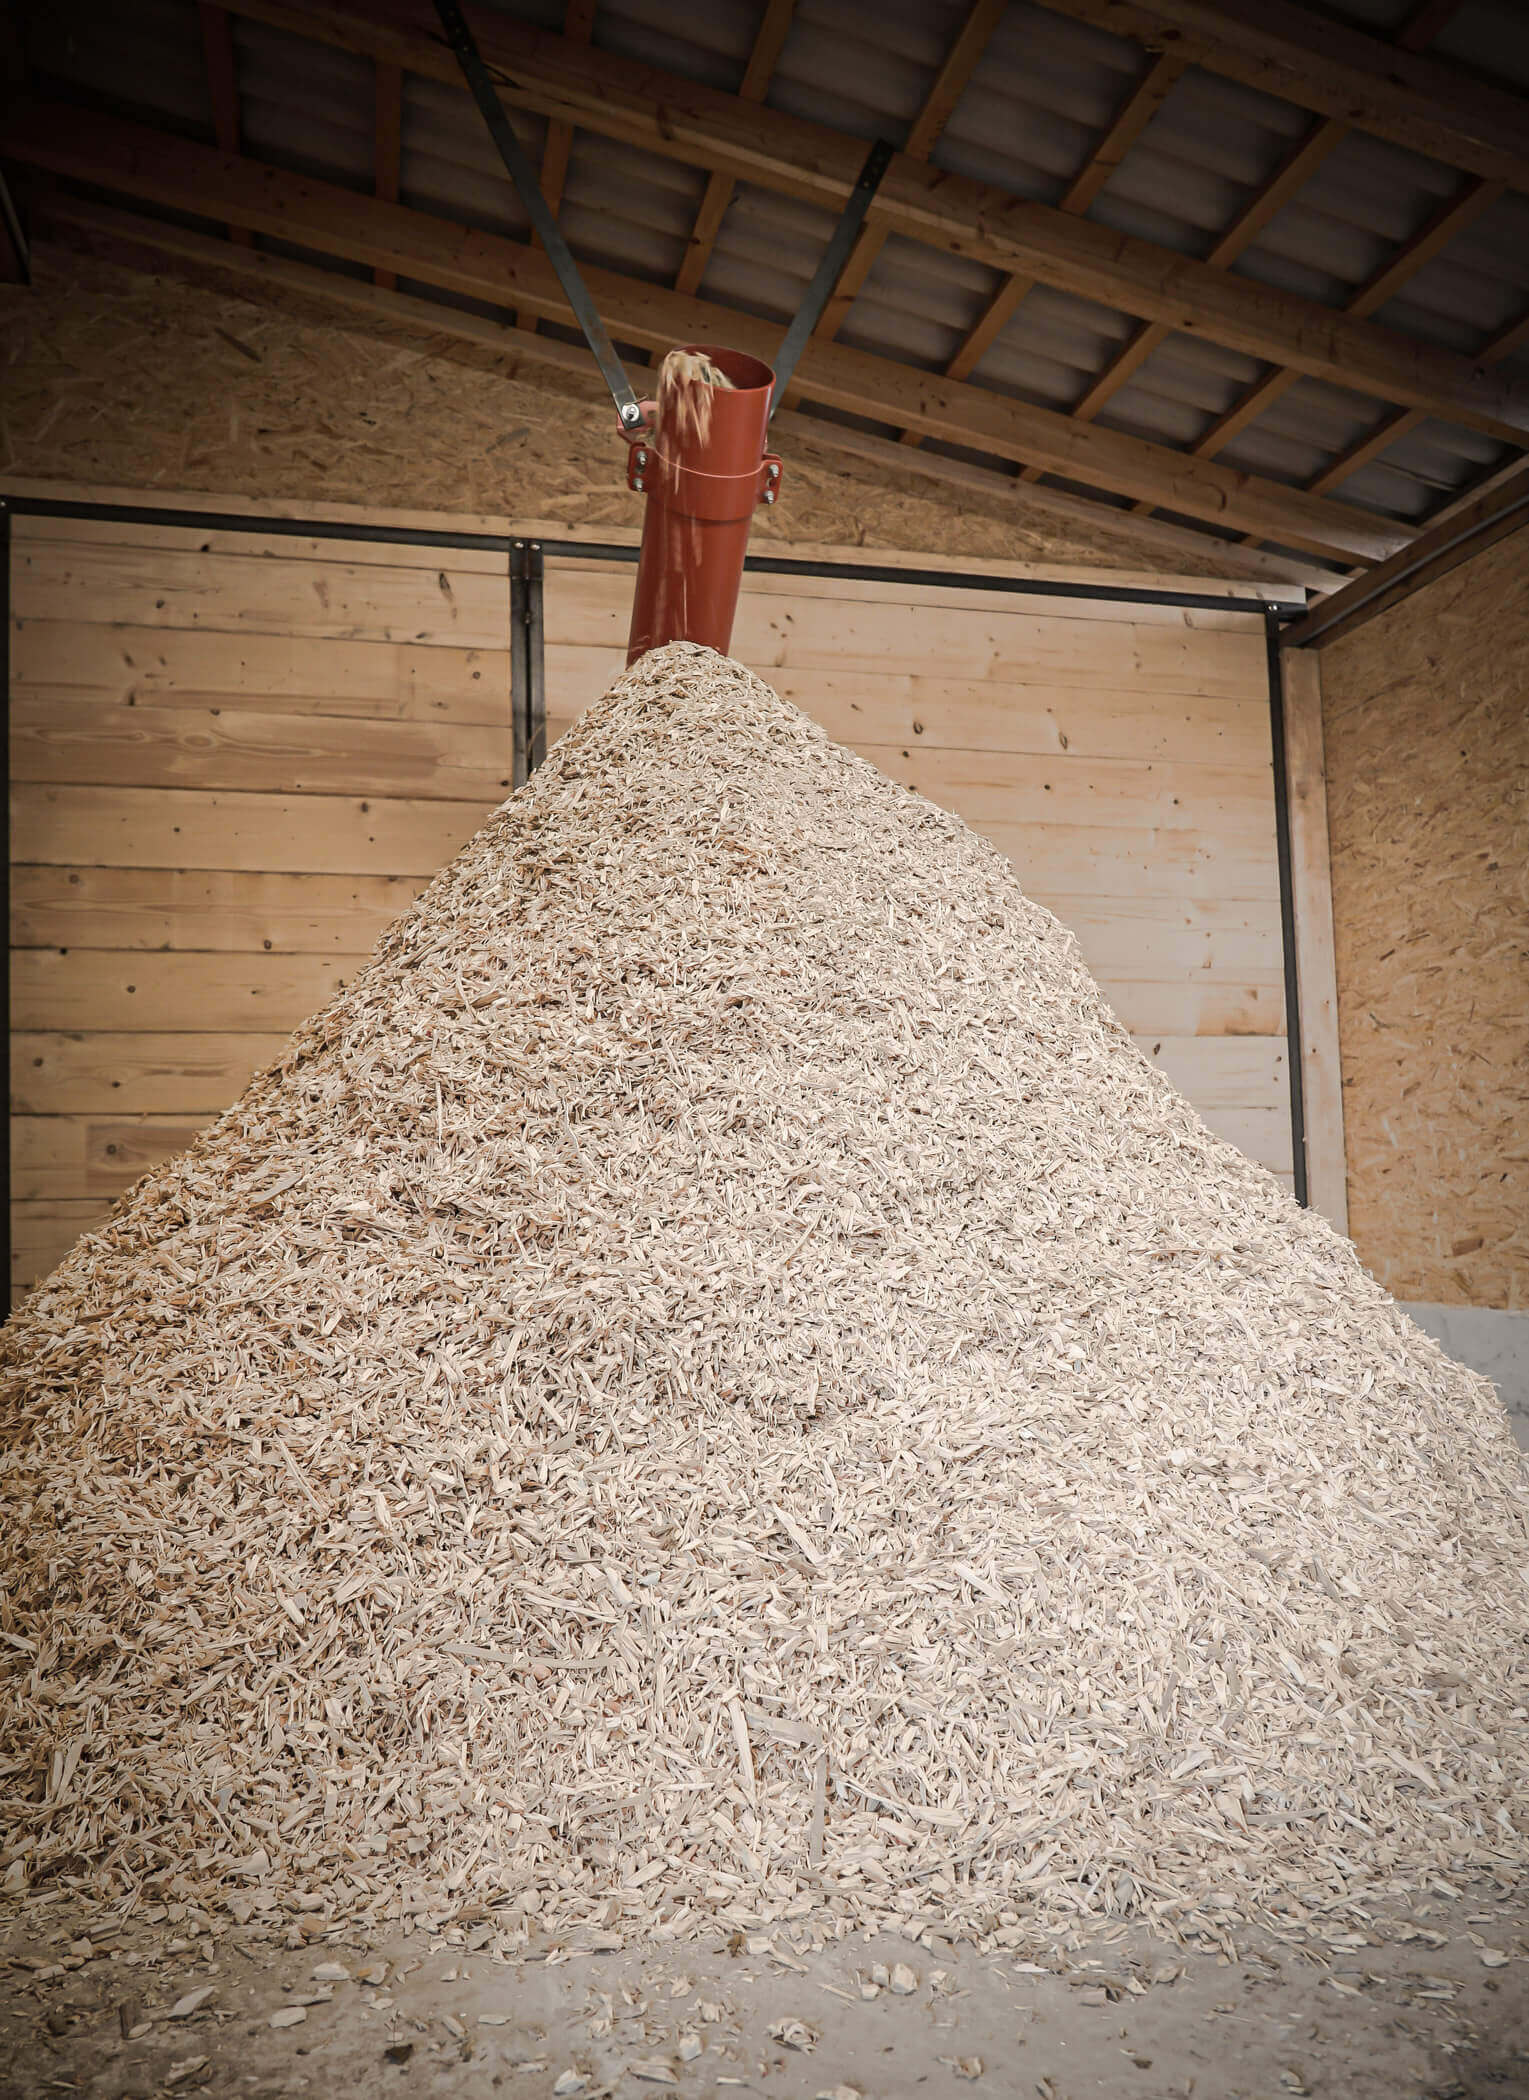 wood chips are used for heating the premises